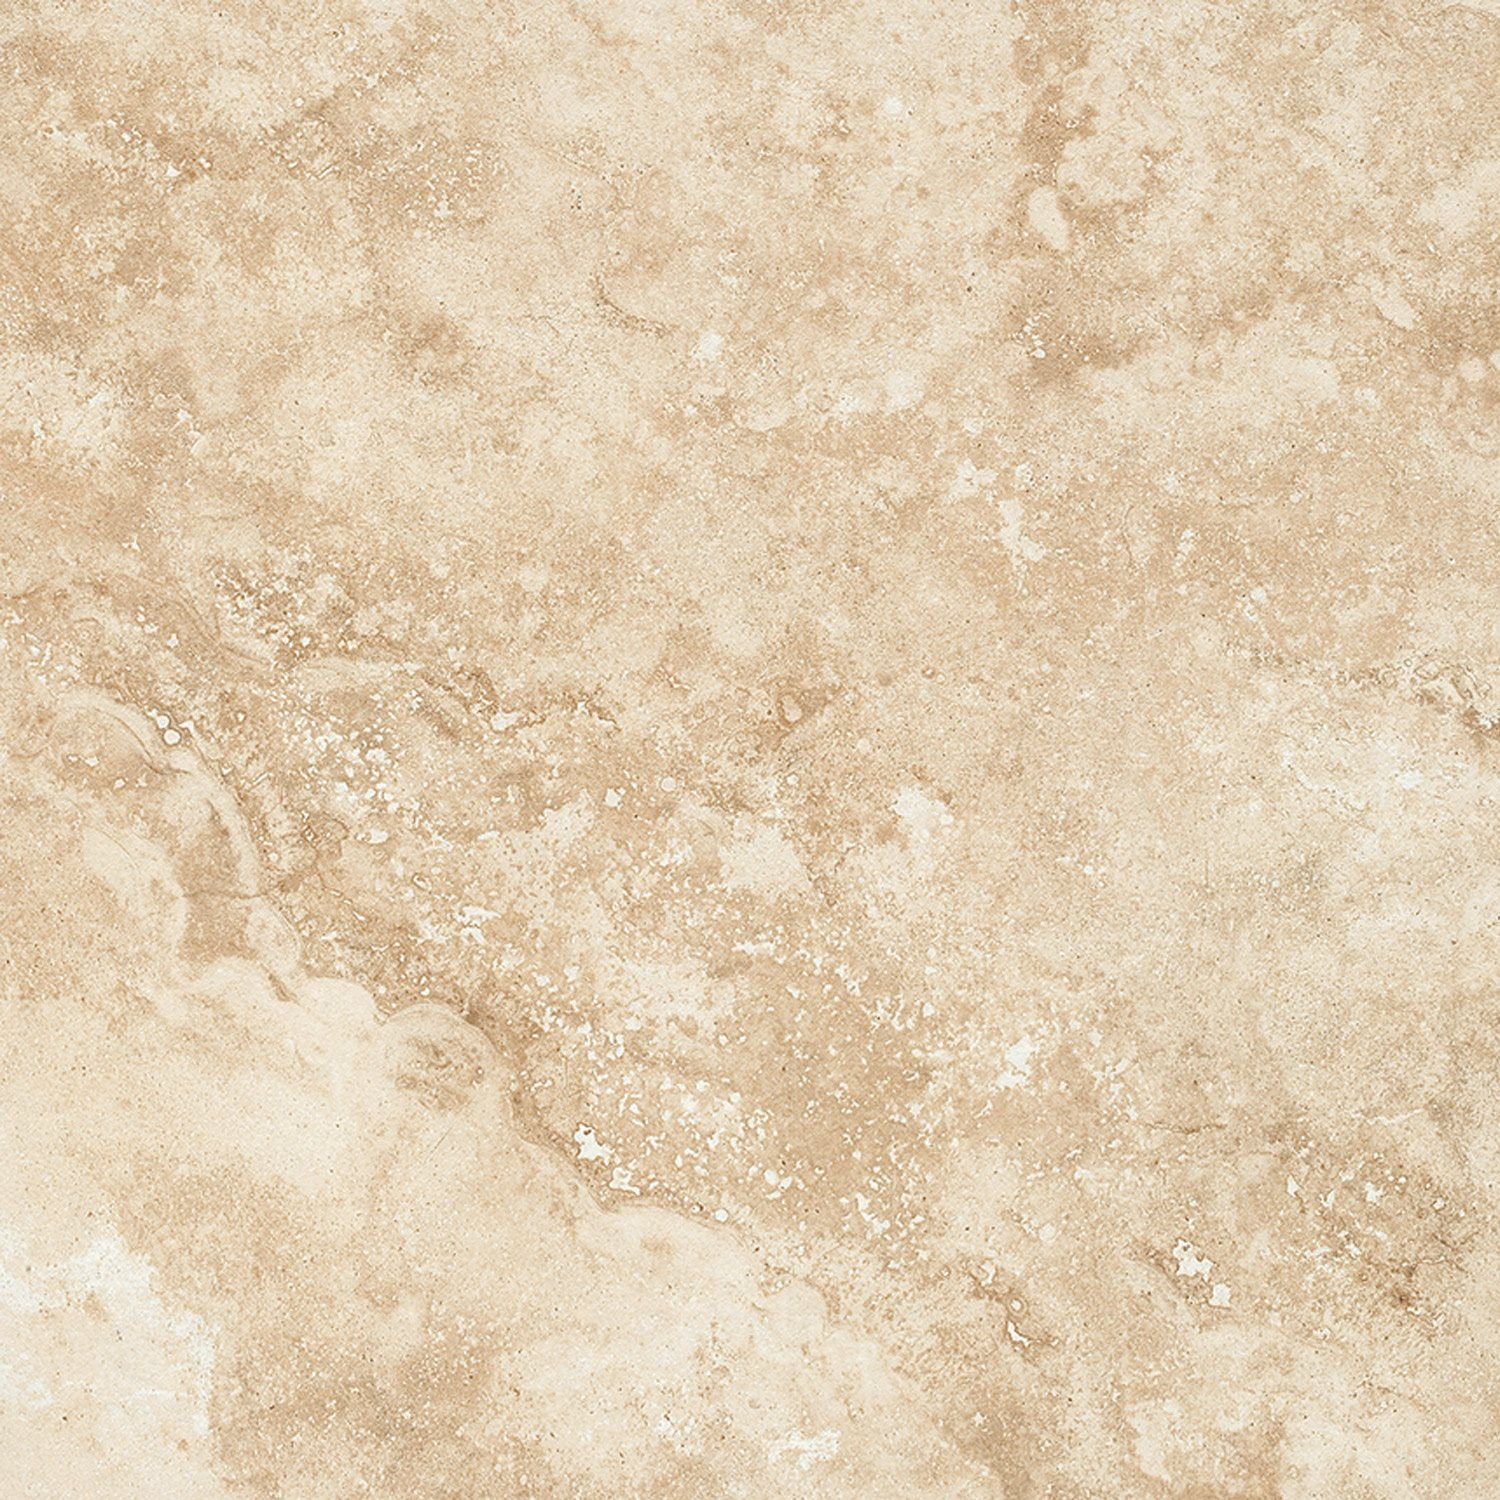 Bodenfliese Travertine Creme 60x60cm - WN19914